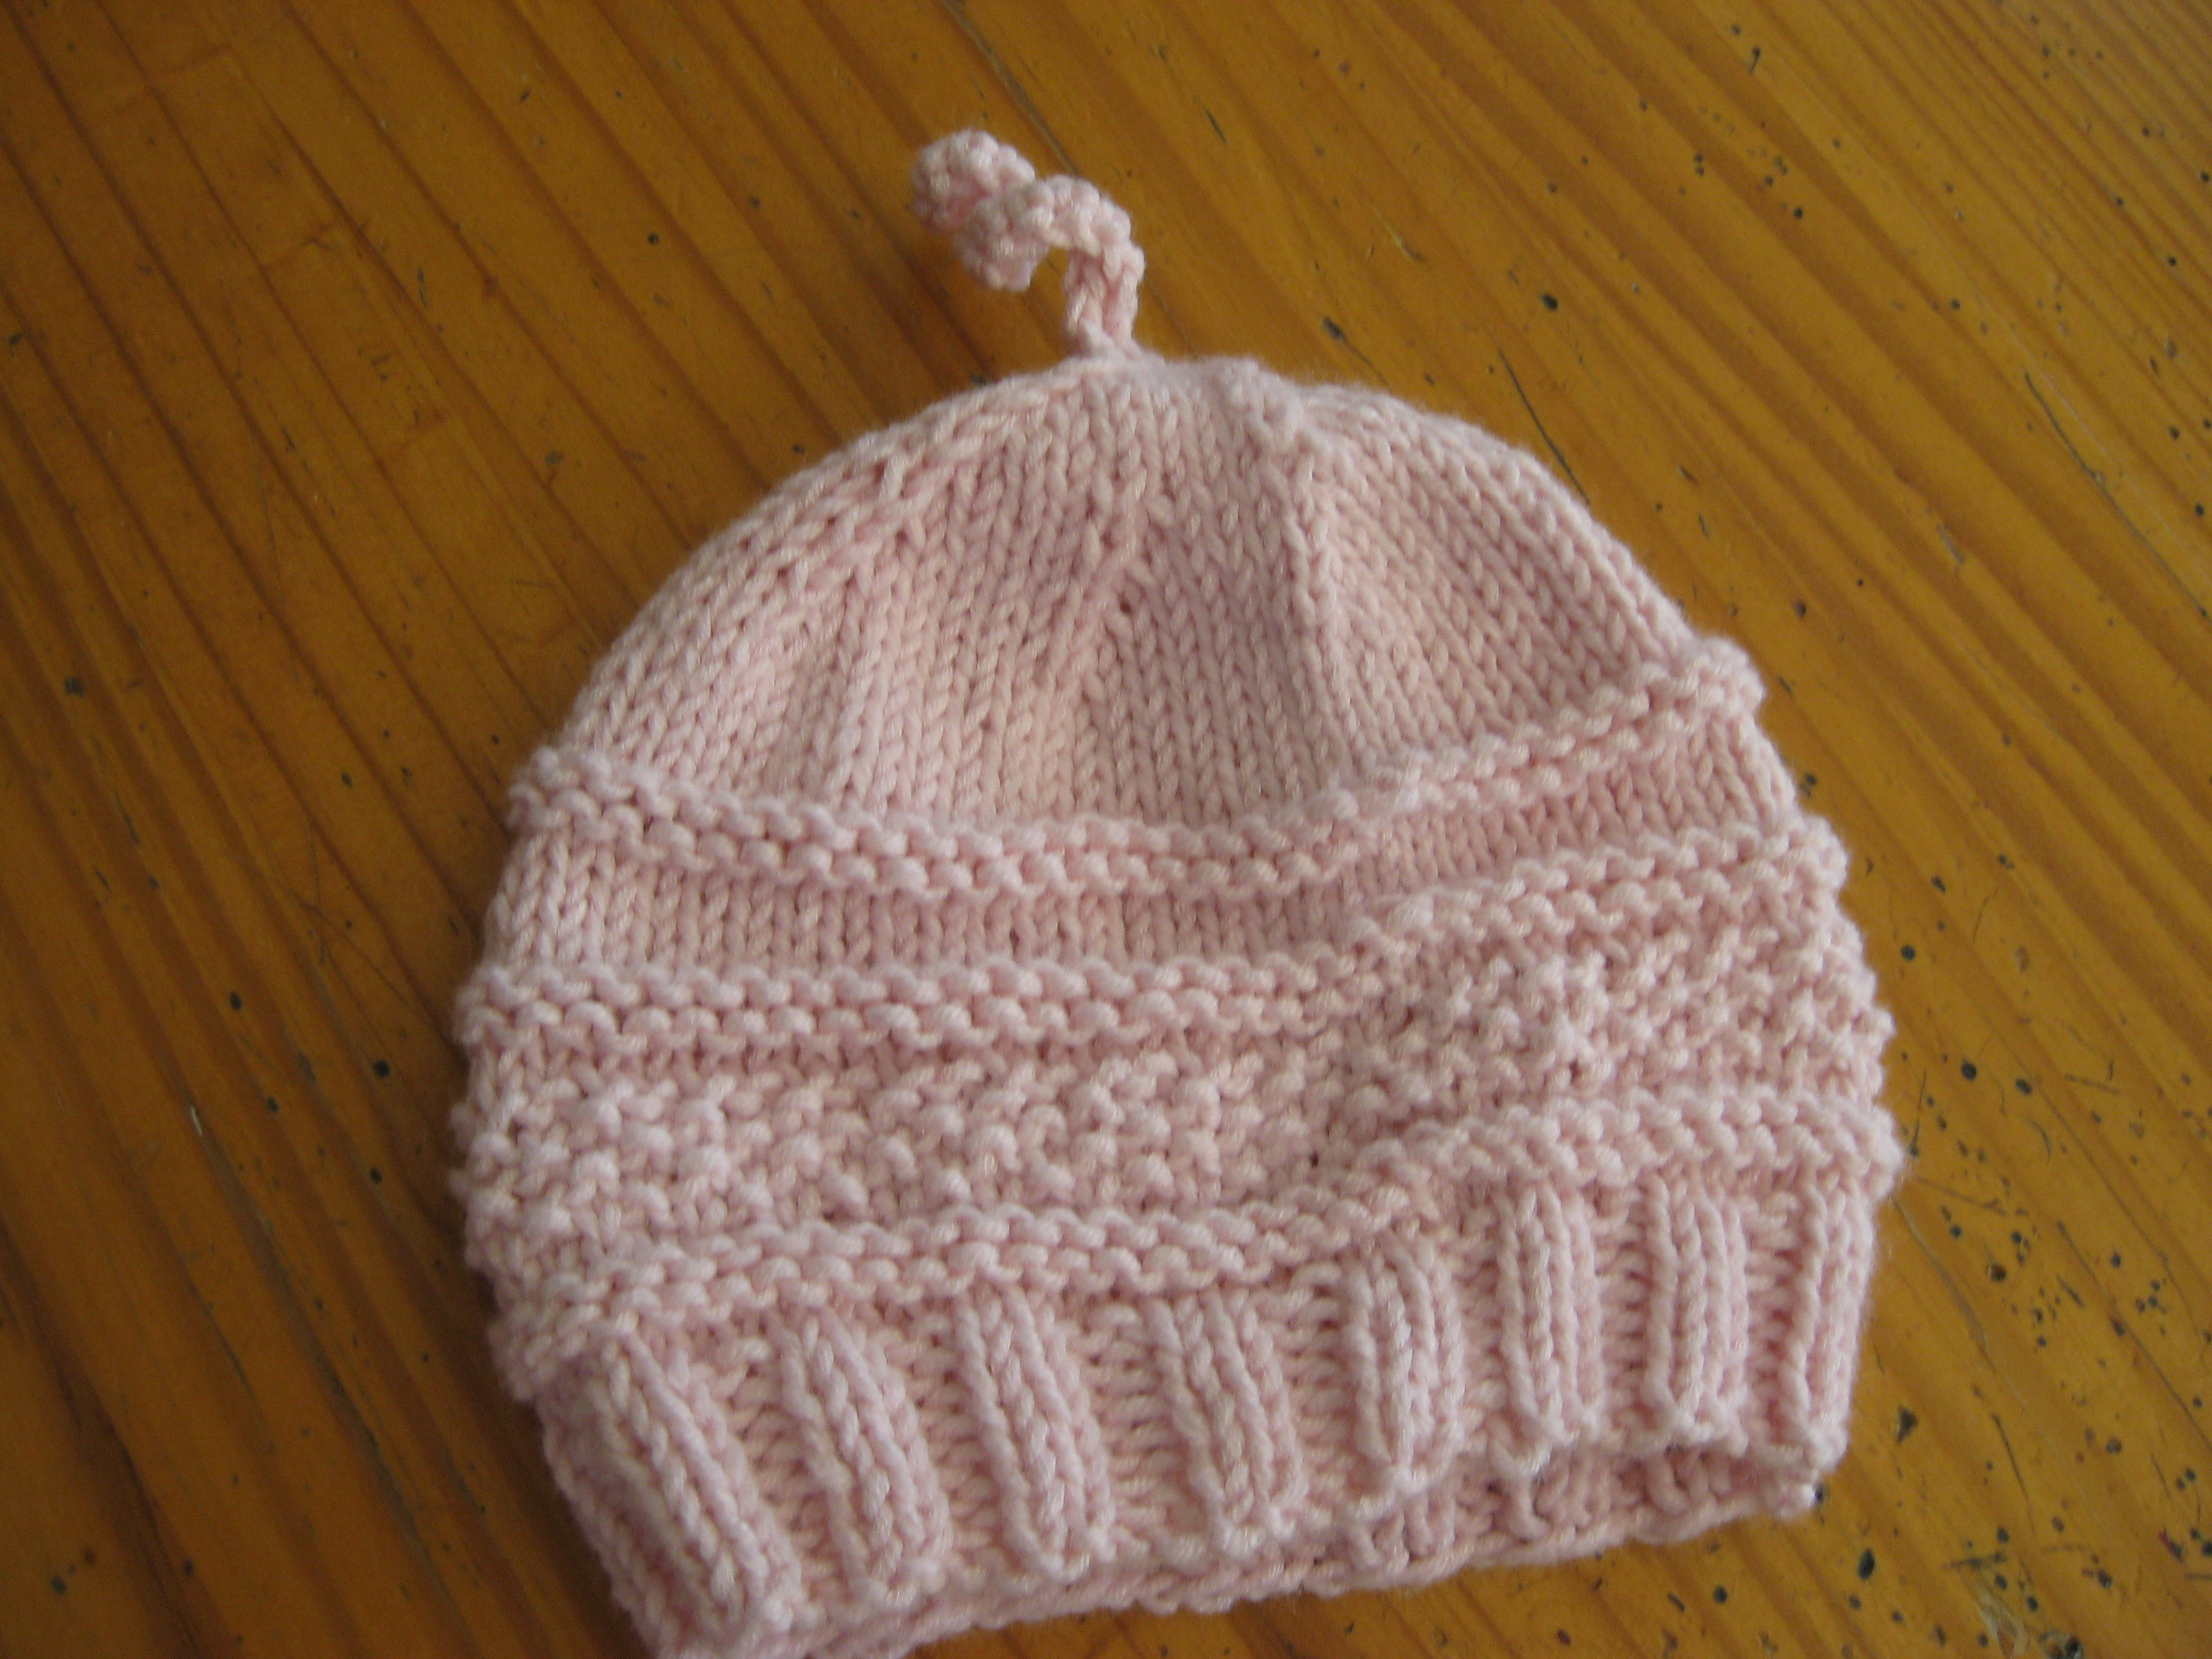 Knitted Baby Hats Lovely Simply Adorable 15 Super Cute Knitted Newborn Hats Of Awesome 41 Images Knitted Baby Hats